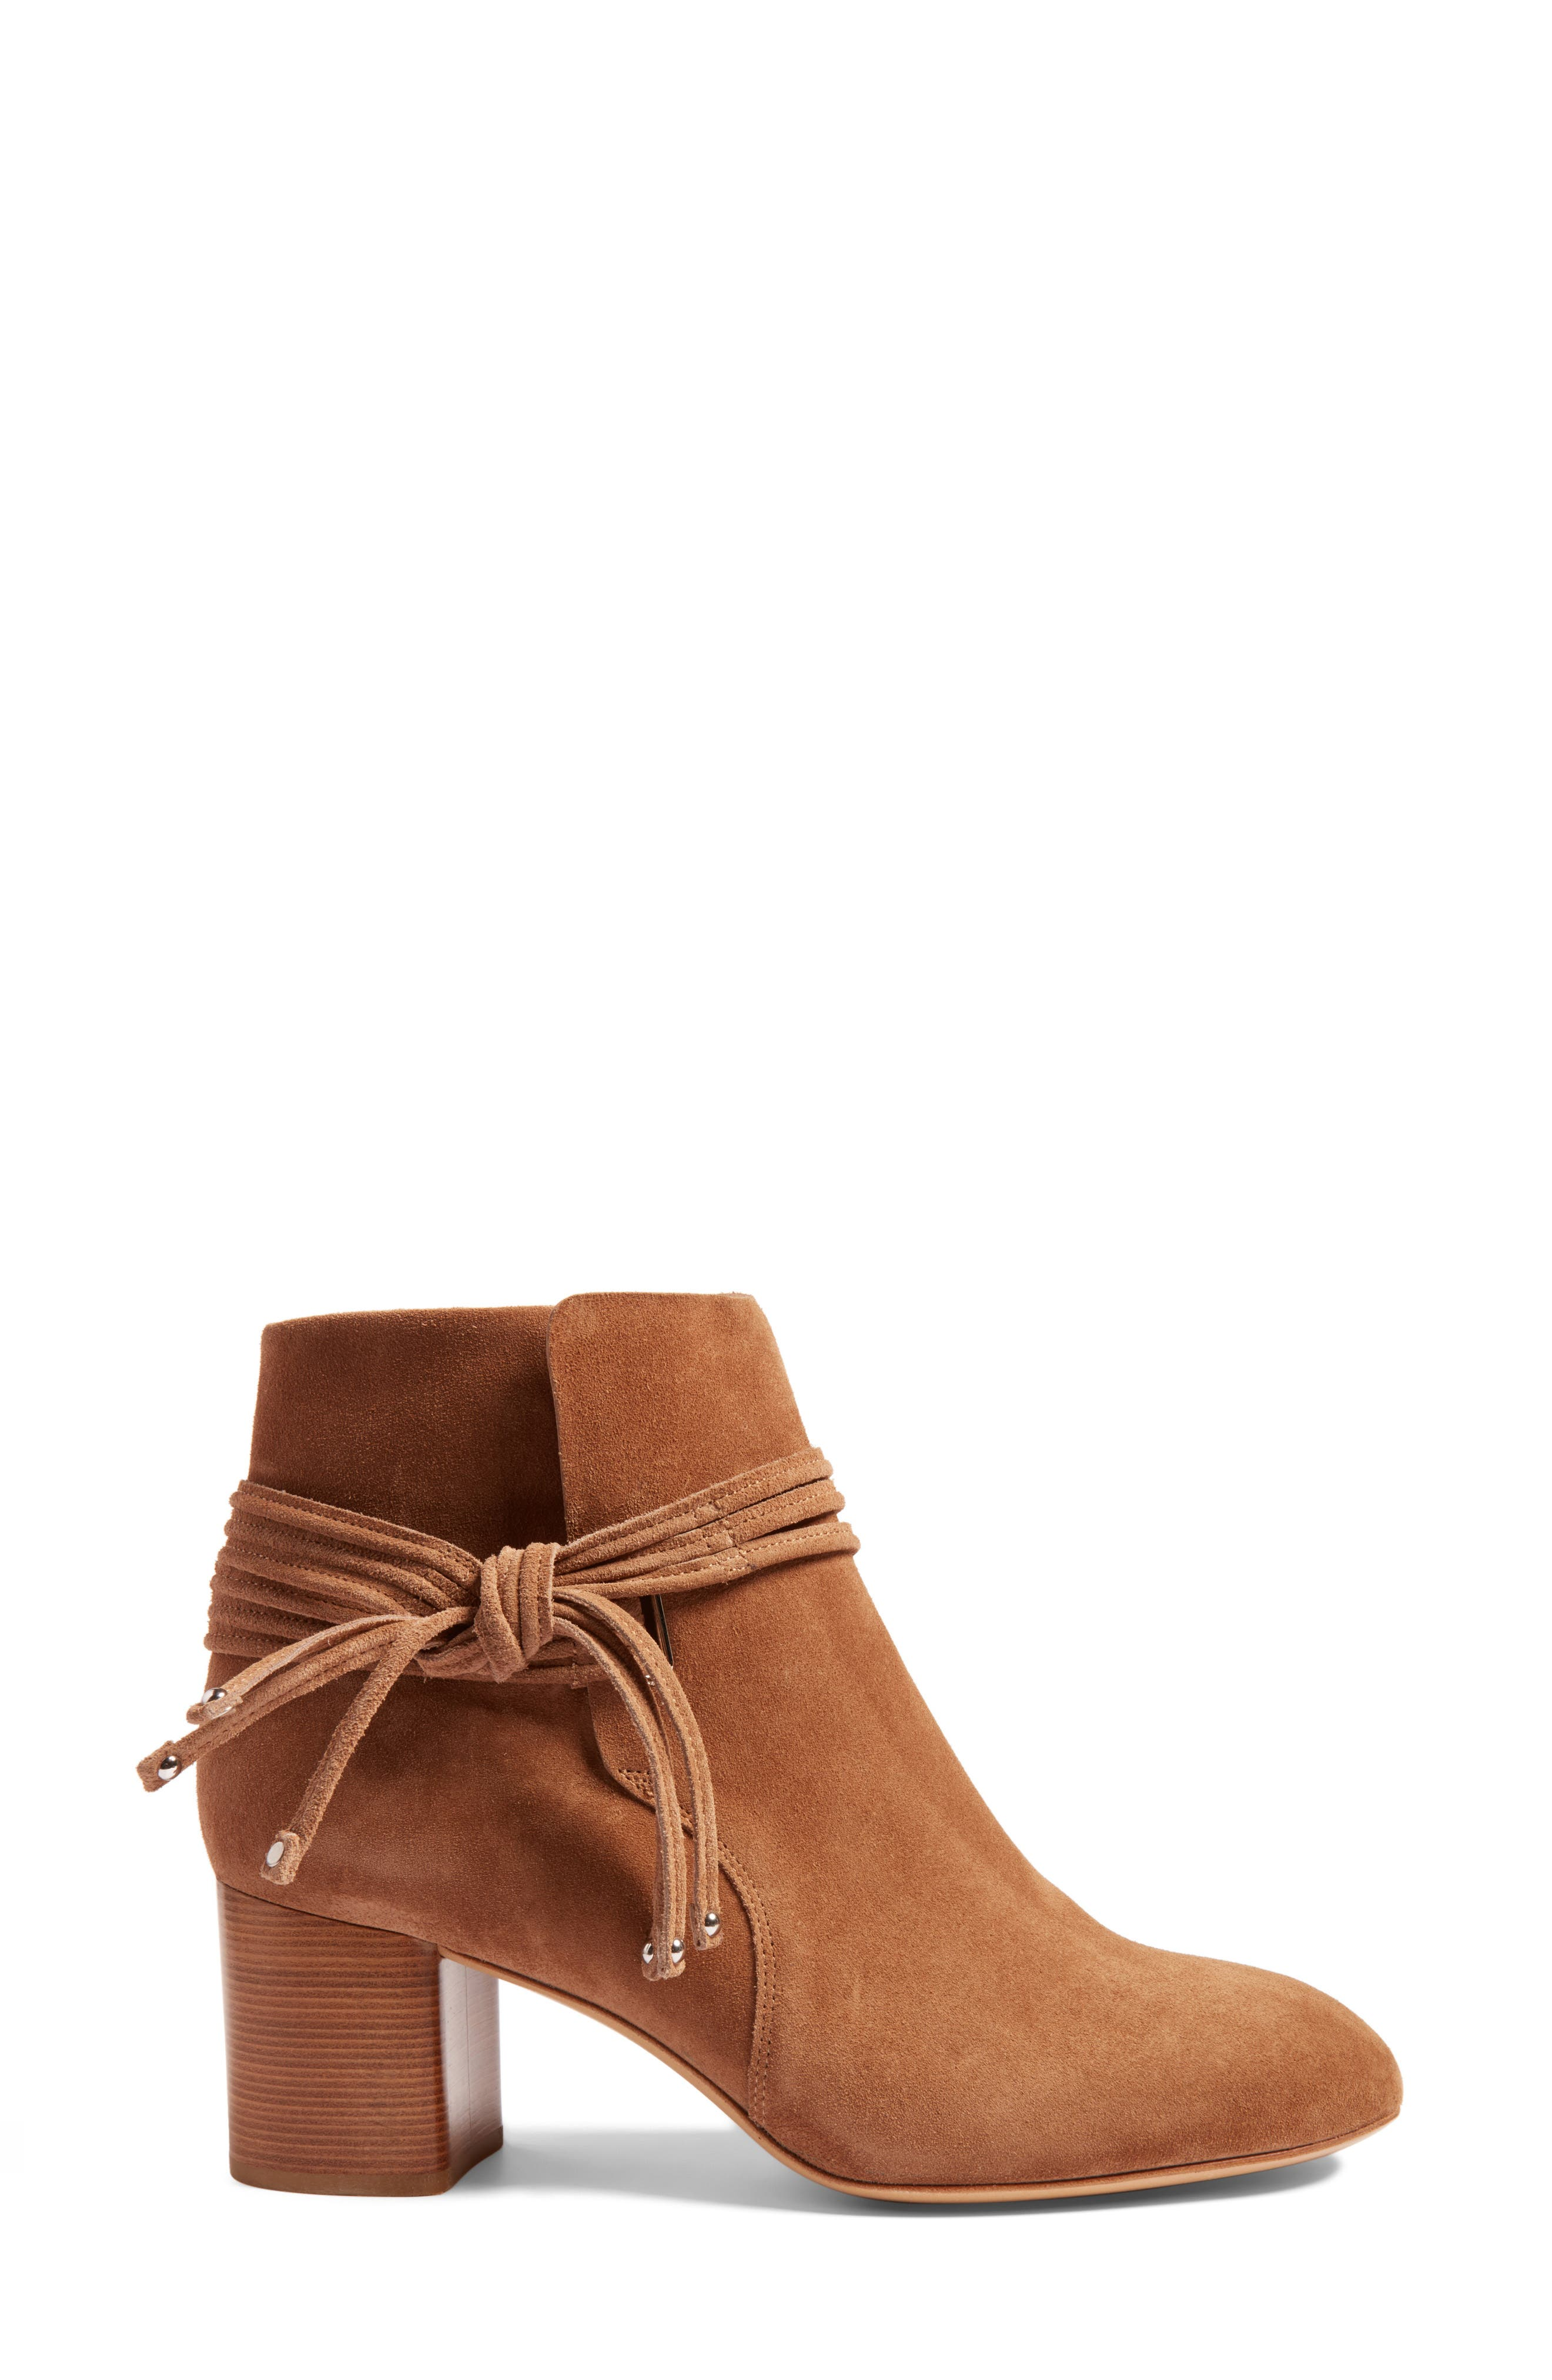 Alternate Image 3  - rag & bone Dalia II Tie-Strap Bootie (Women)